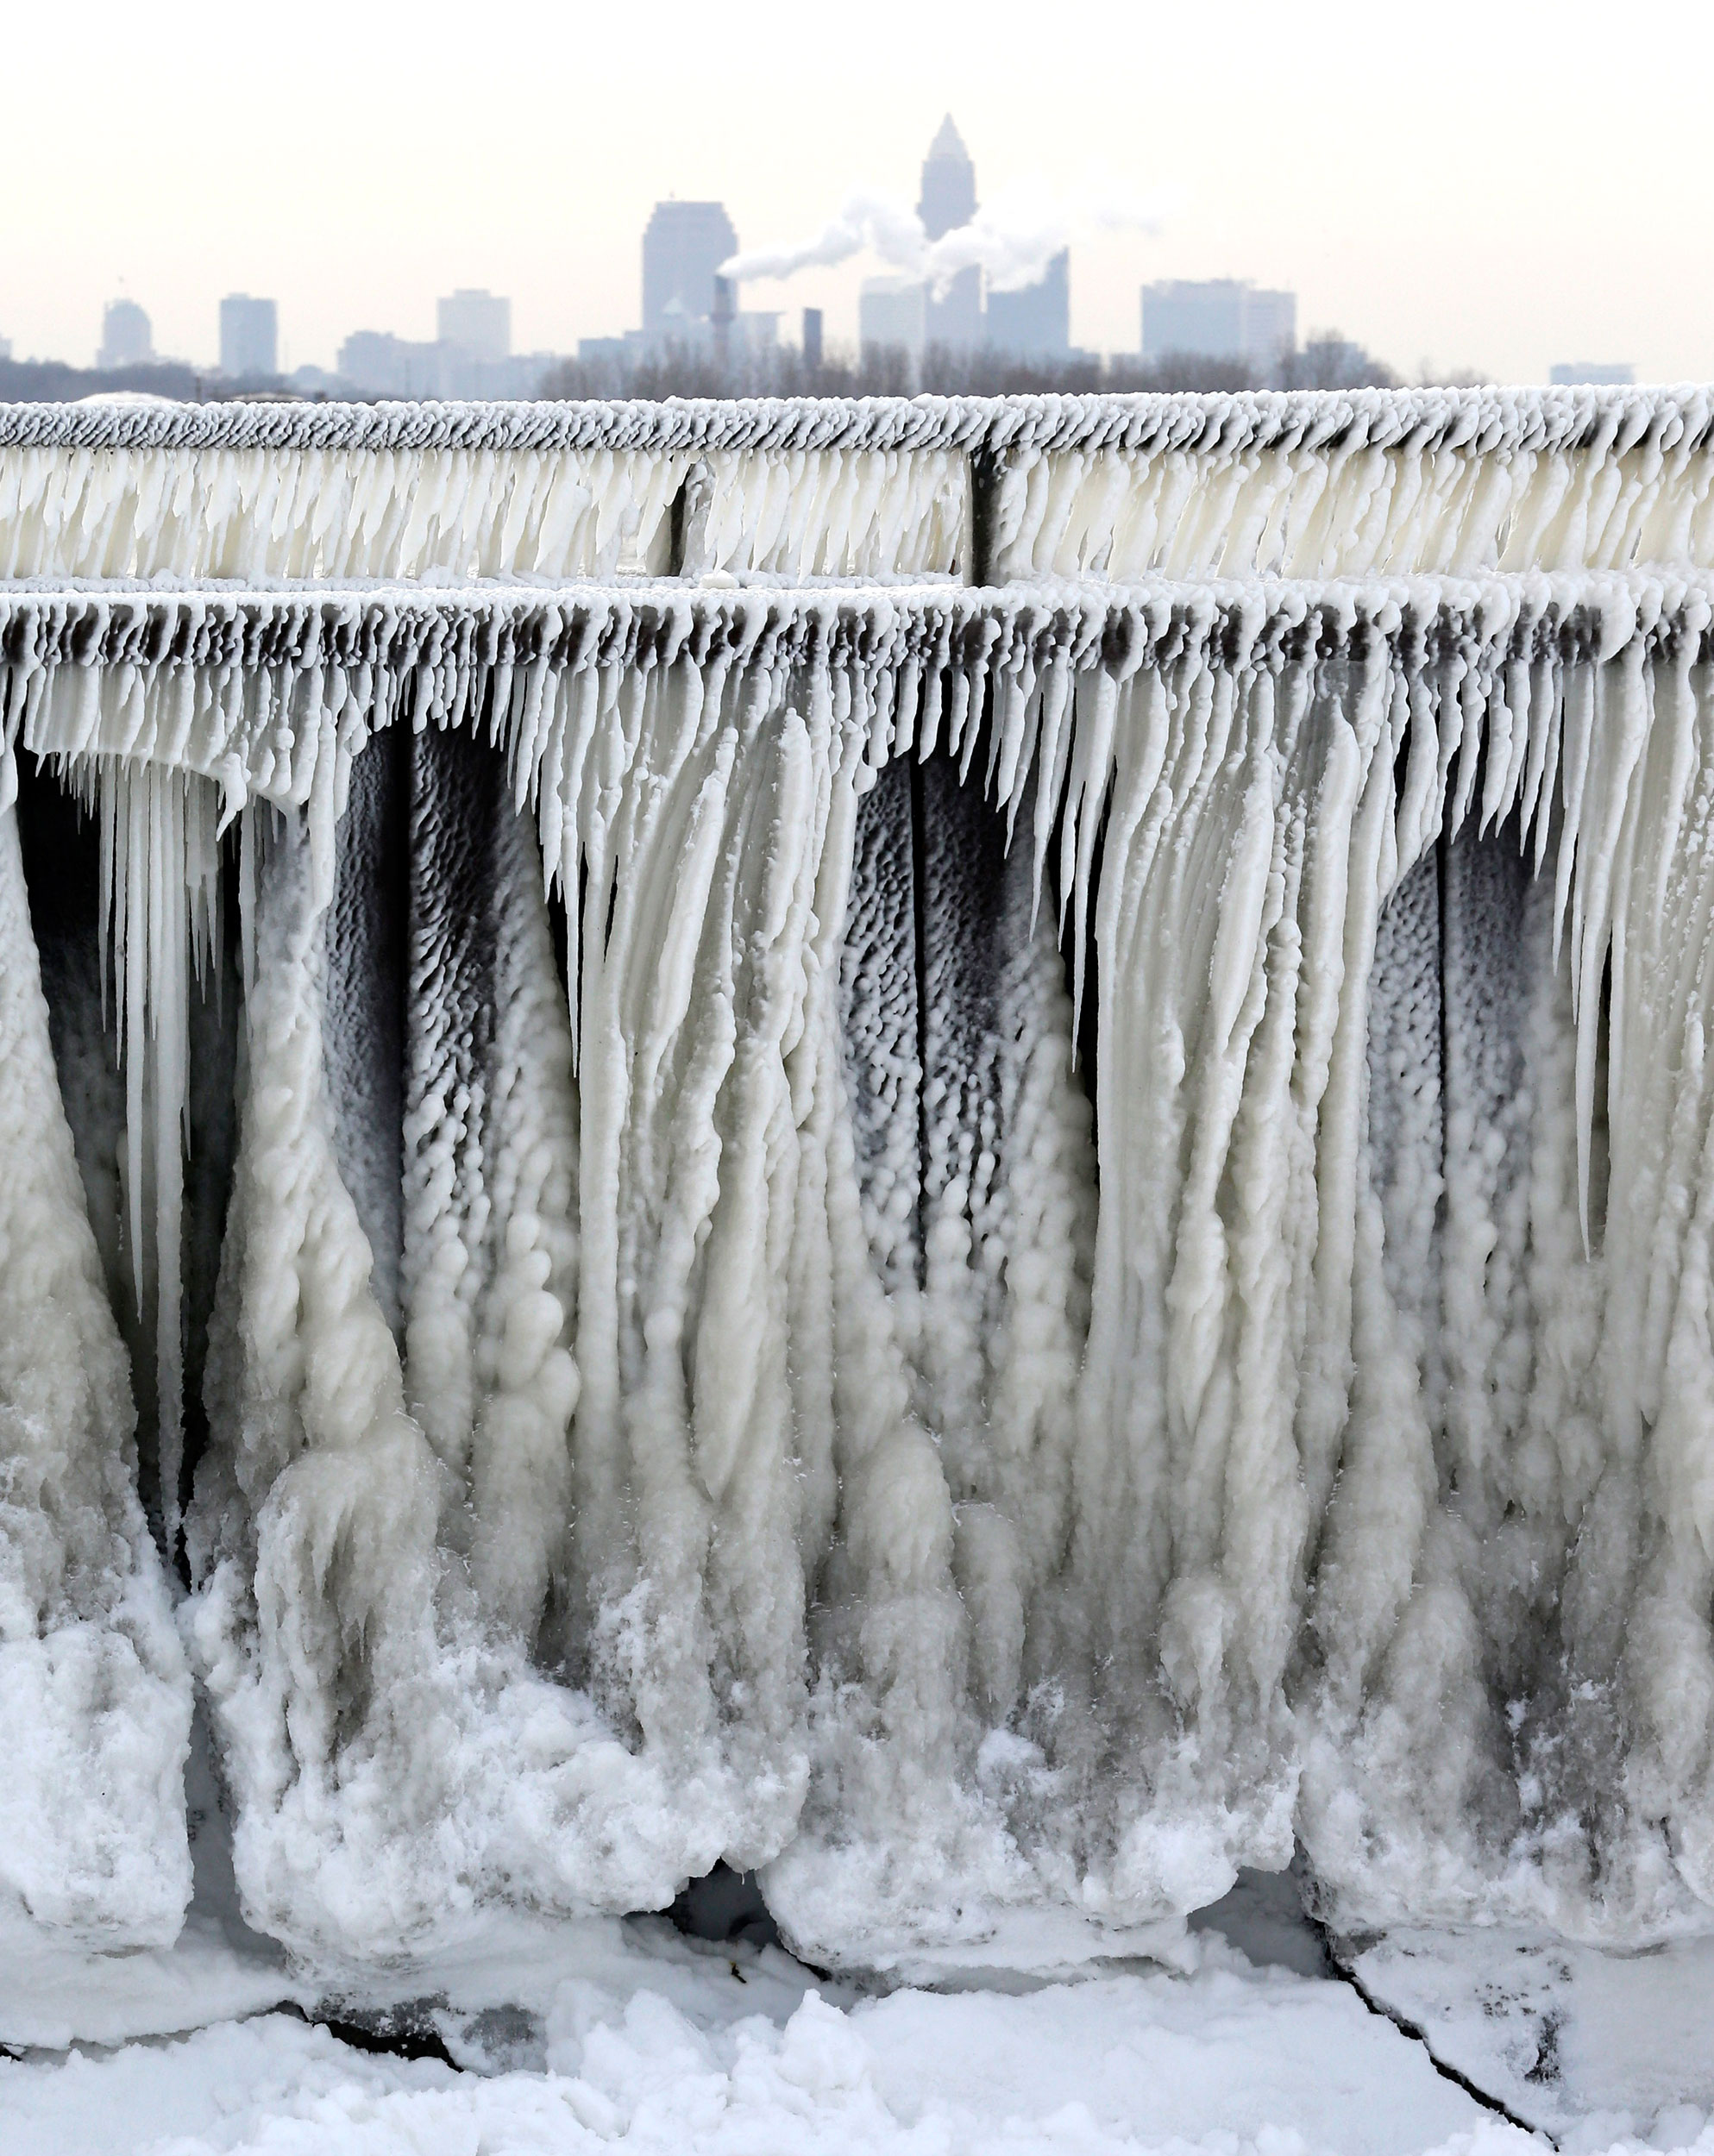 Ice from Lake Erie forms on a pedestrian walkway with a view of Cleveland, Ohio in the background on Jan. 8, 2015.